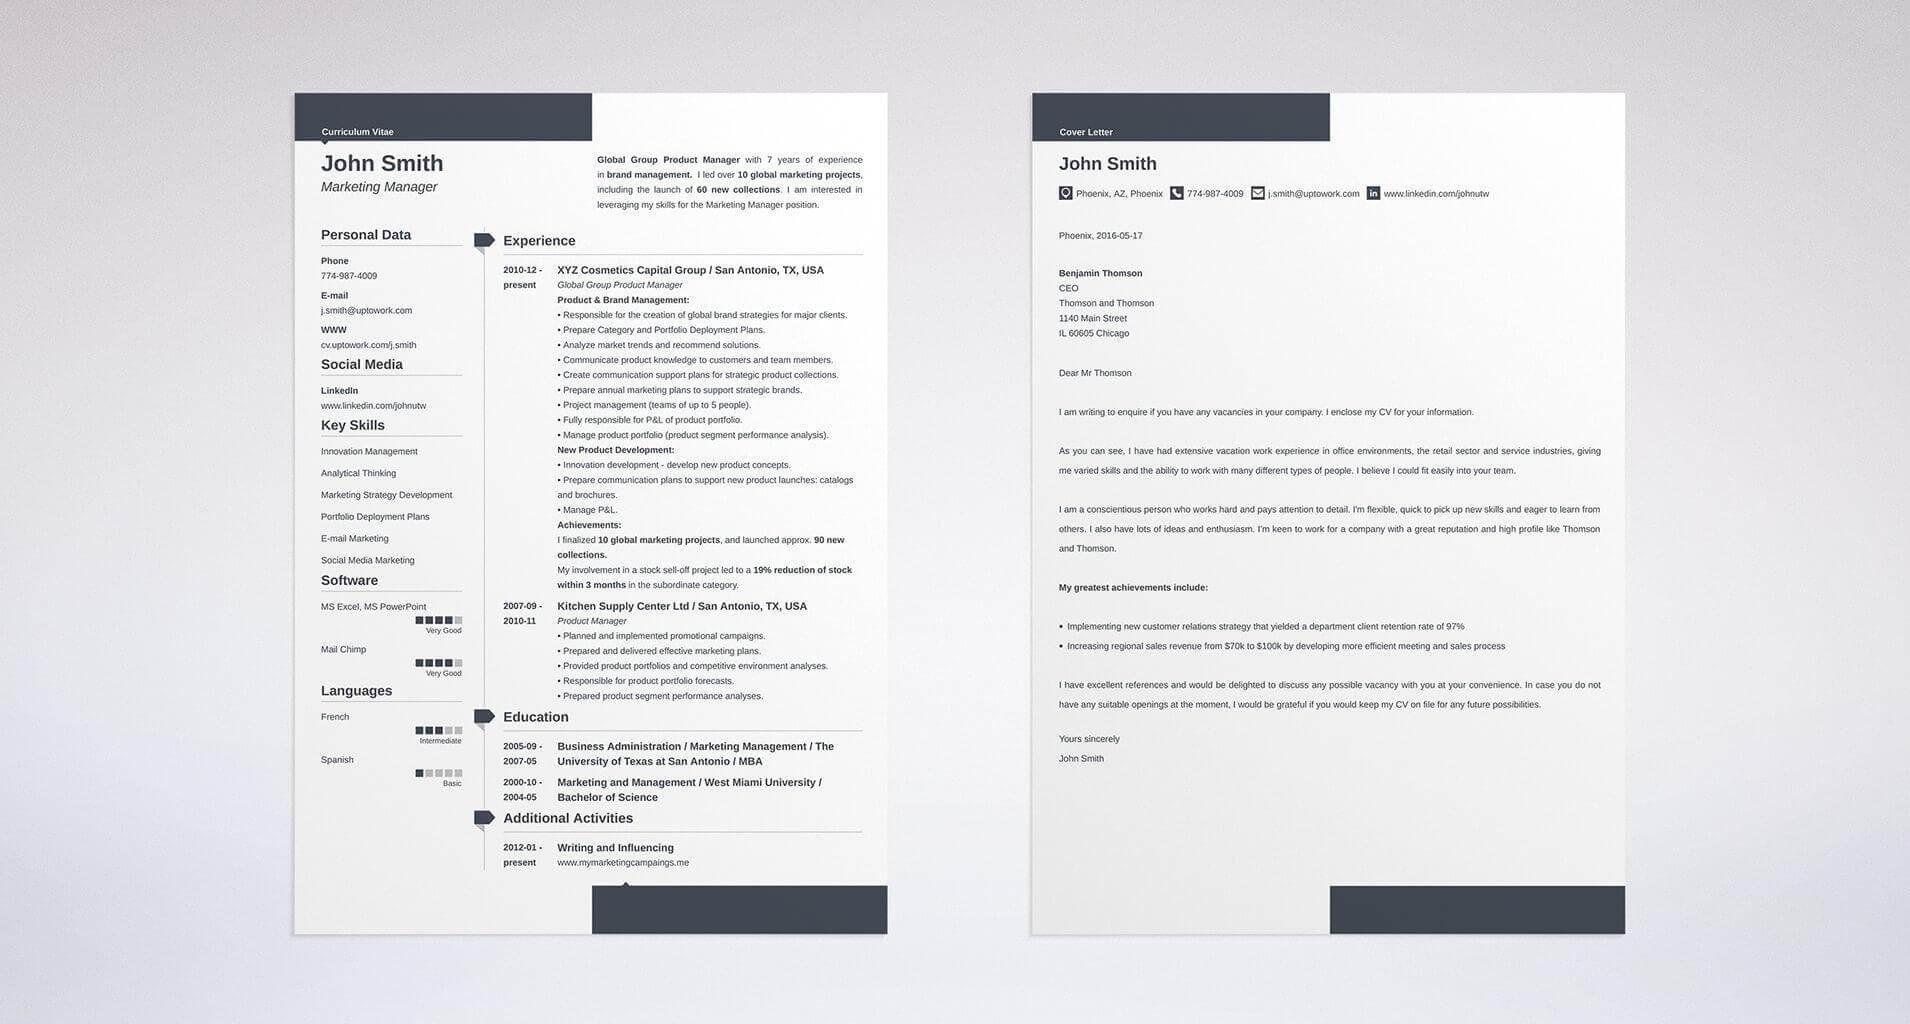 licenses certifications on resume sample easy tips certificates and cover letter template Resume Certificates And Licenses On Resume